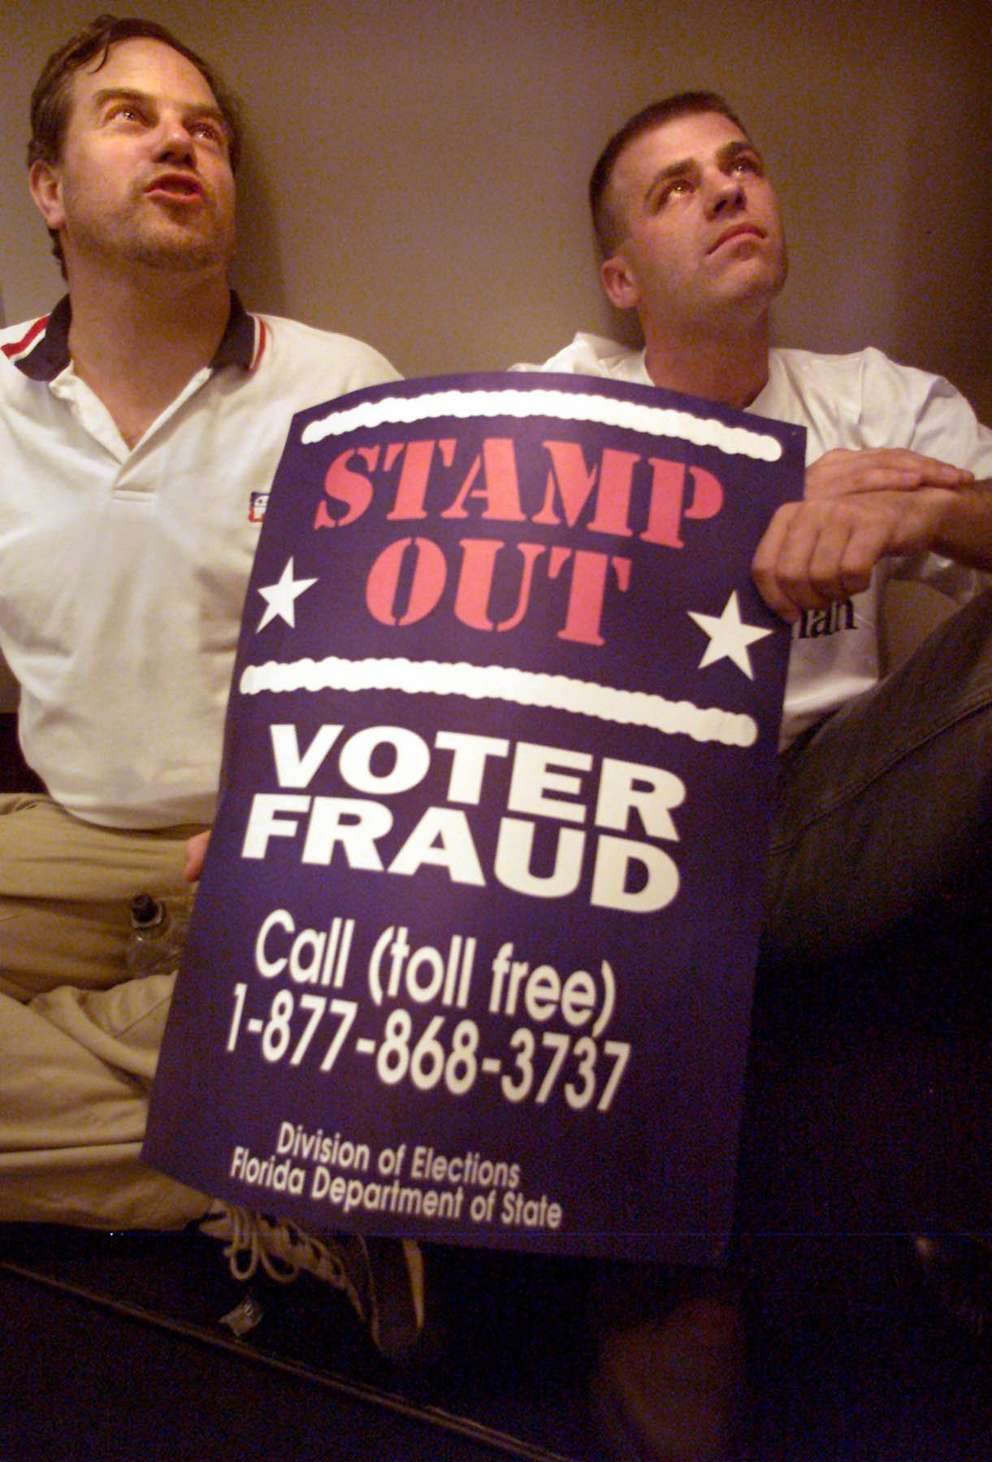 For Dade by Carl Juste/mhs, Office of Elections, County Hall, Stephen P. Clark Center, Downtown Miami, 11/22/00 — Republican party observers Brendan Quinn(left) and Bruce Tague (right) both from New York state joined the impromptu side-in outside the Miami – Dade County's elections office. Republic observers demanded to be allowed to observe the counting of the 10,700 ballots. The Canvassing Board suspended the manual counting of Miami – Dade County's ballots and will only count the undercounted ballots.